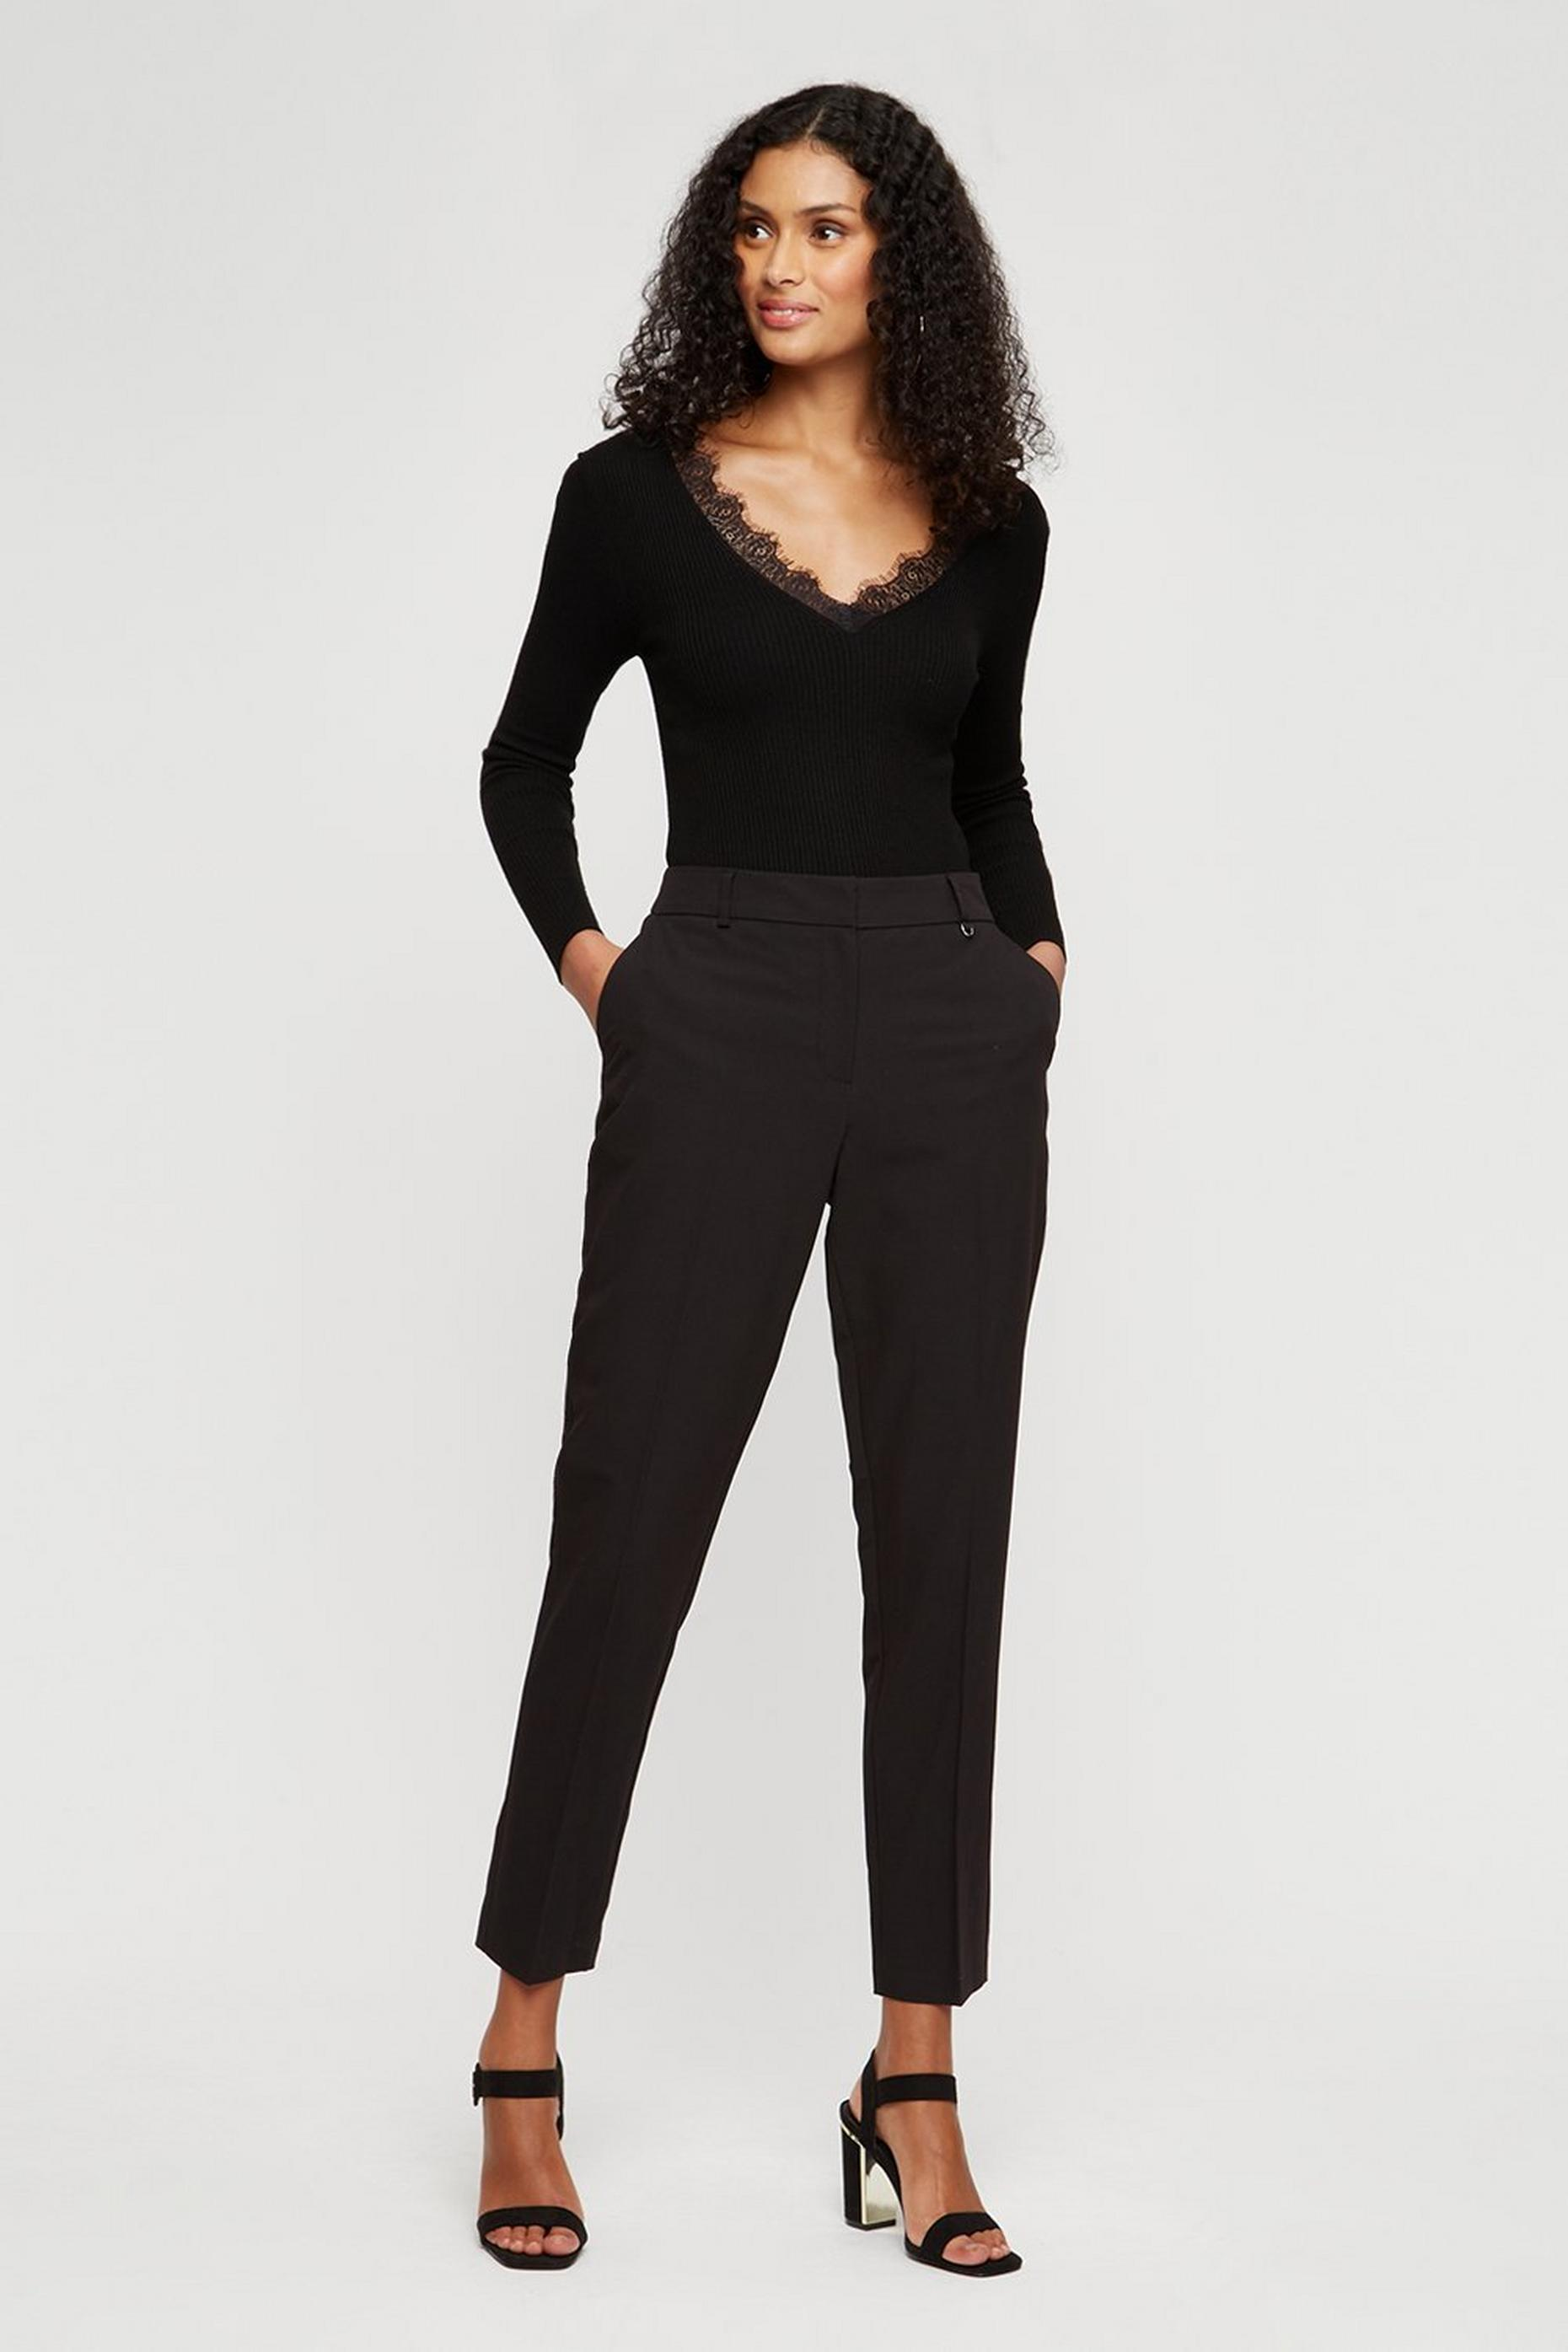 Black High Waist Slim Leg Trousers